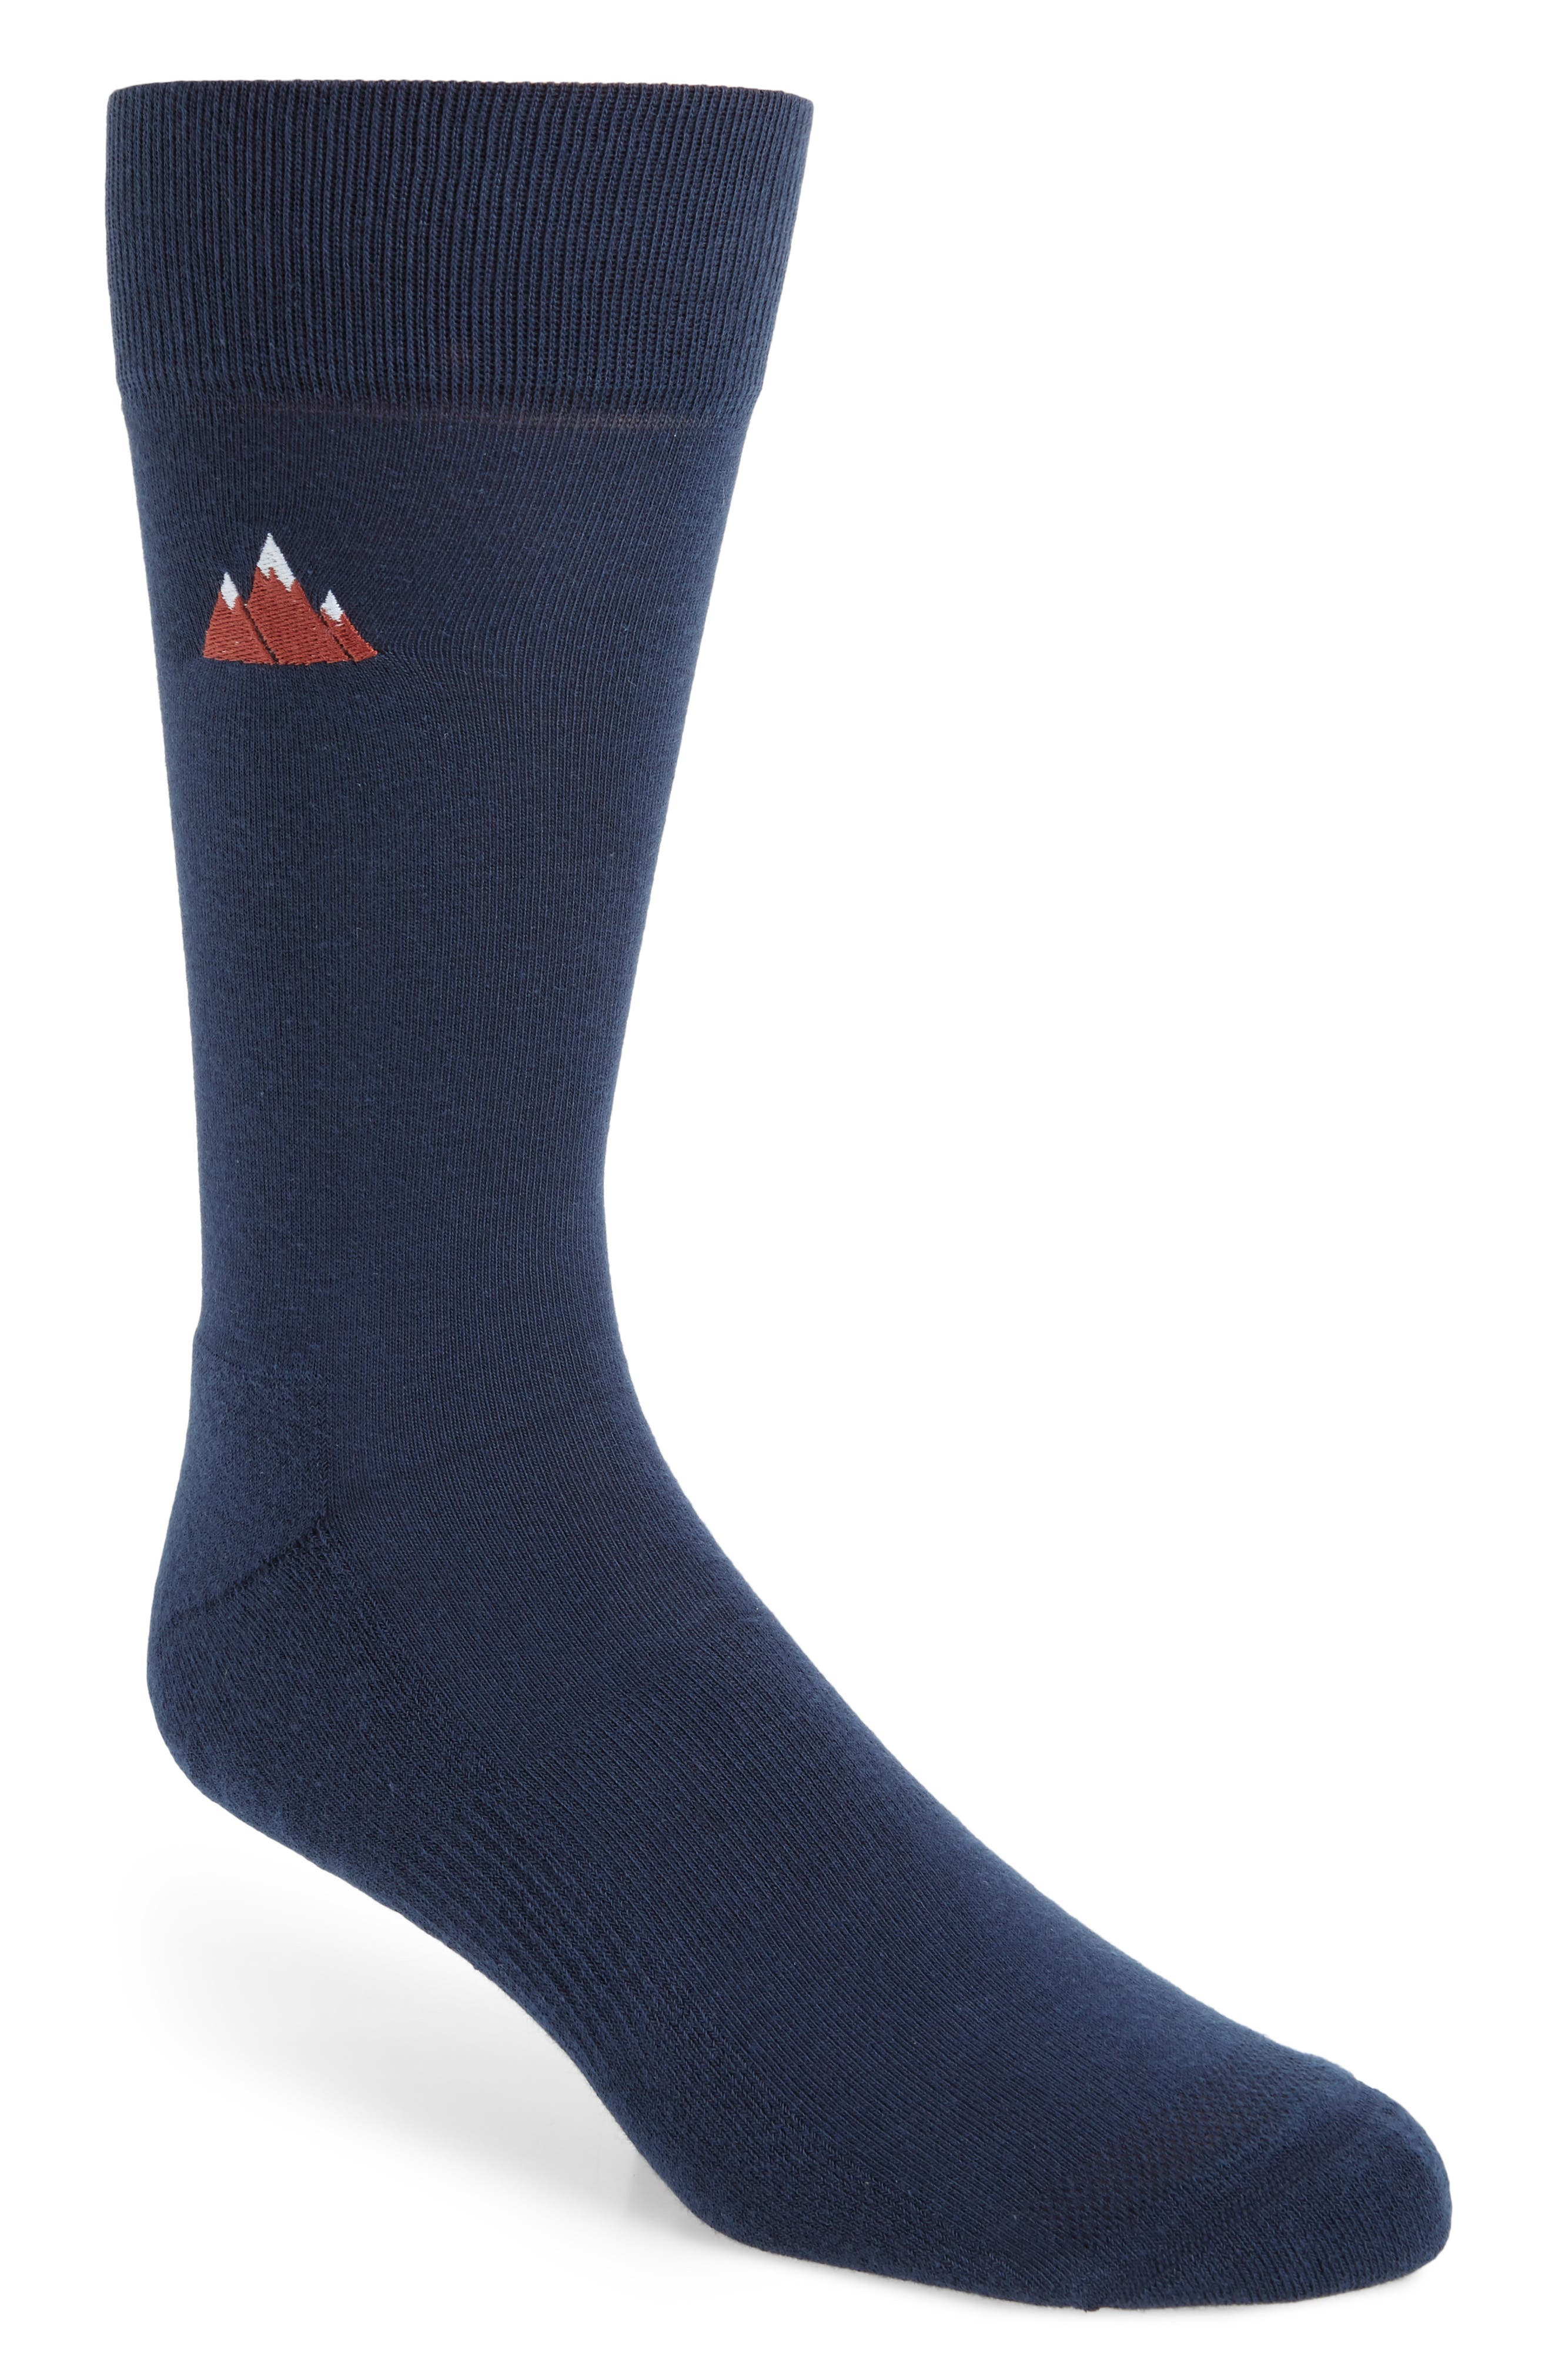 NORDSTROM MEN'S SHOP, Embroidered Mountain Socks, Main thumbnail 1, color, NAVY DUSK